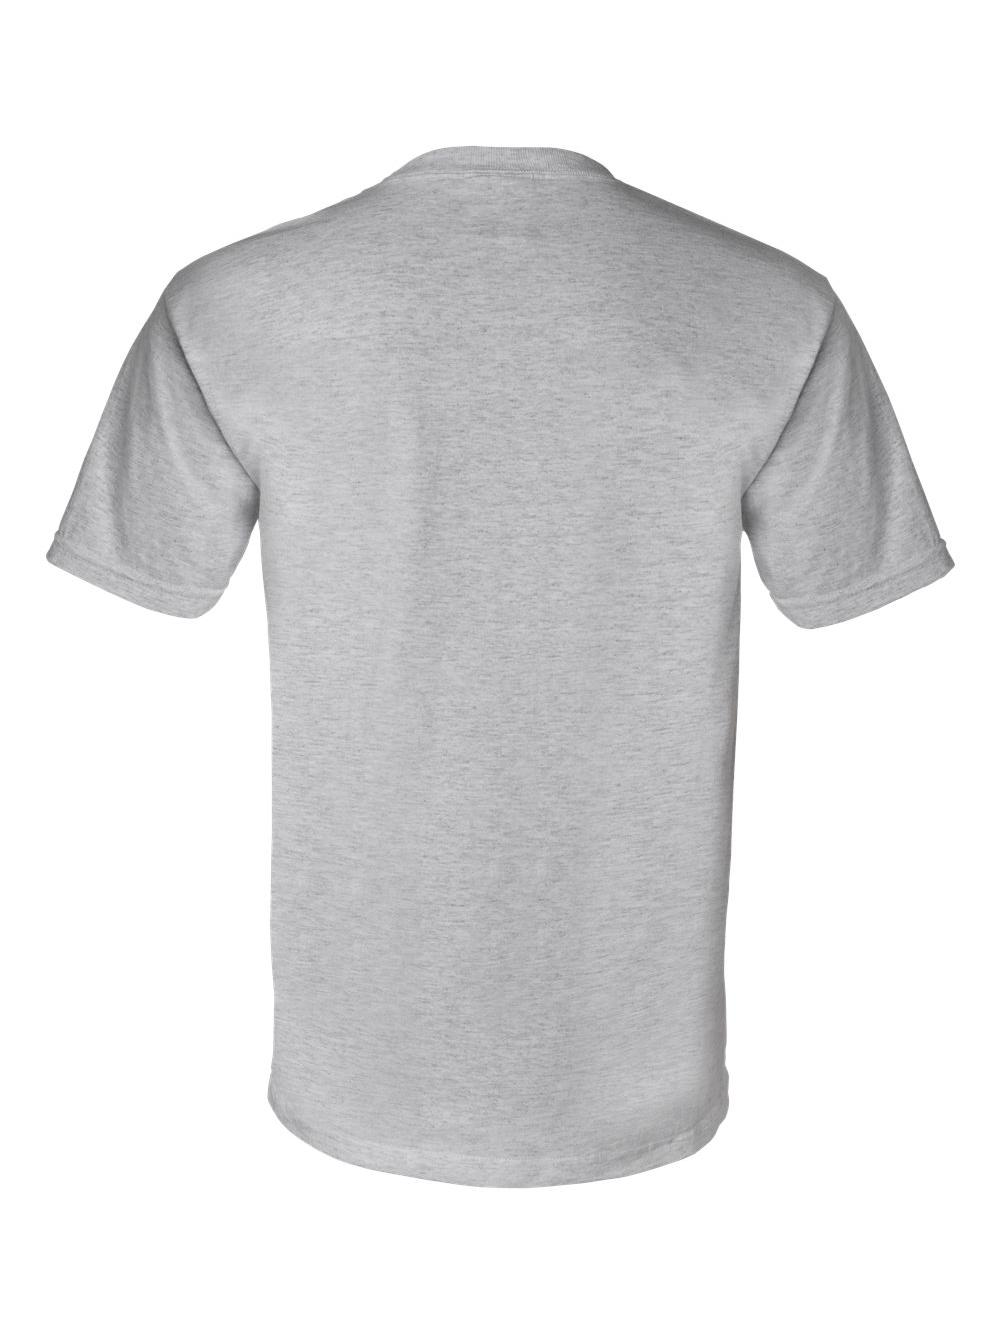 Bayside-Union-Made-Short-Sleeve-T-Shirt-with-a-Pocket-3015 thumbnail 13